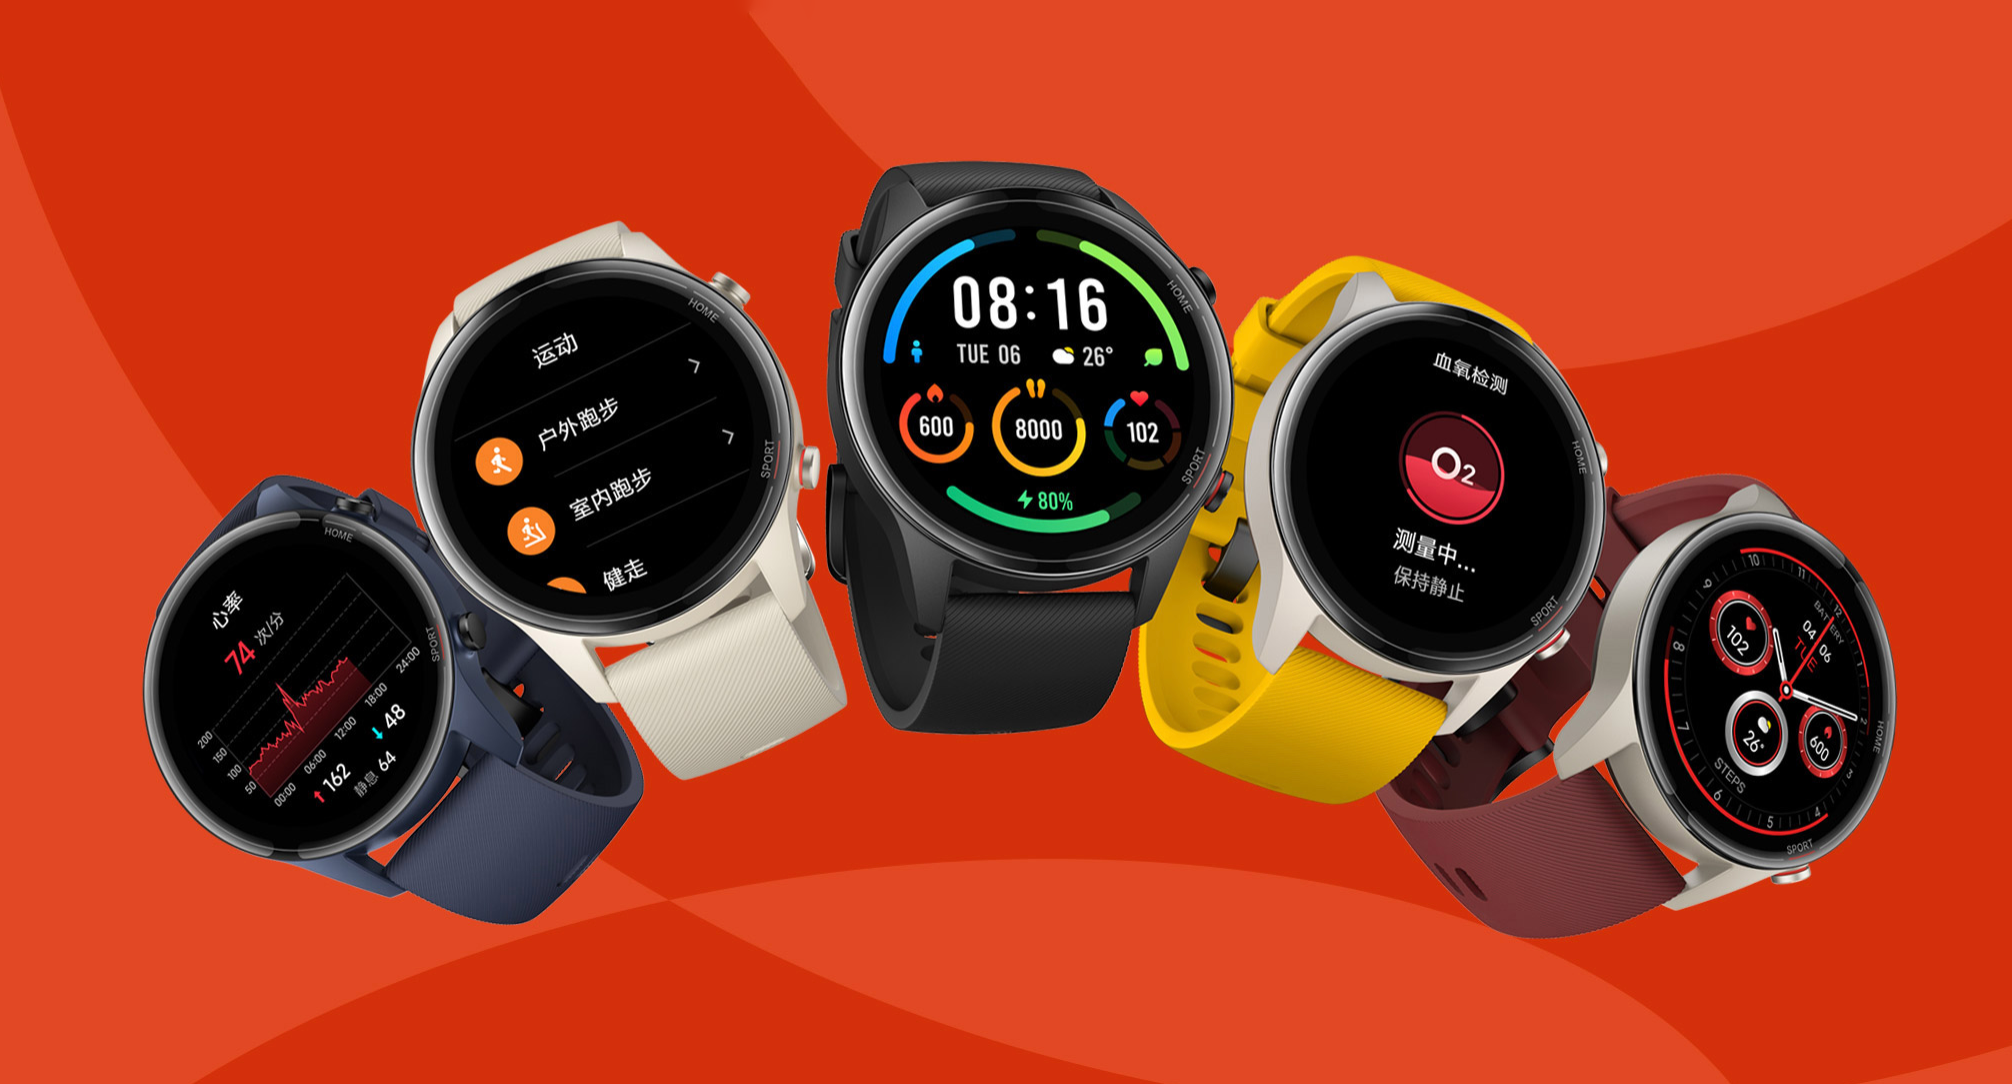 Xiaomi представила смарт-часы Mi Watch Color Sports Edition с датчиком SpO2 за $105